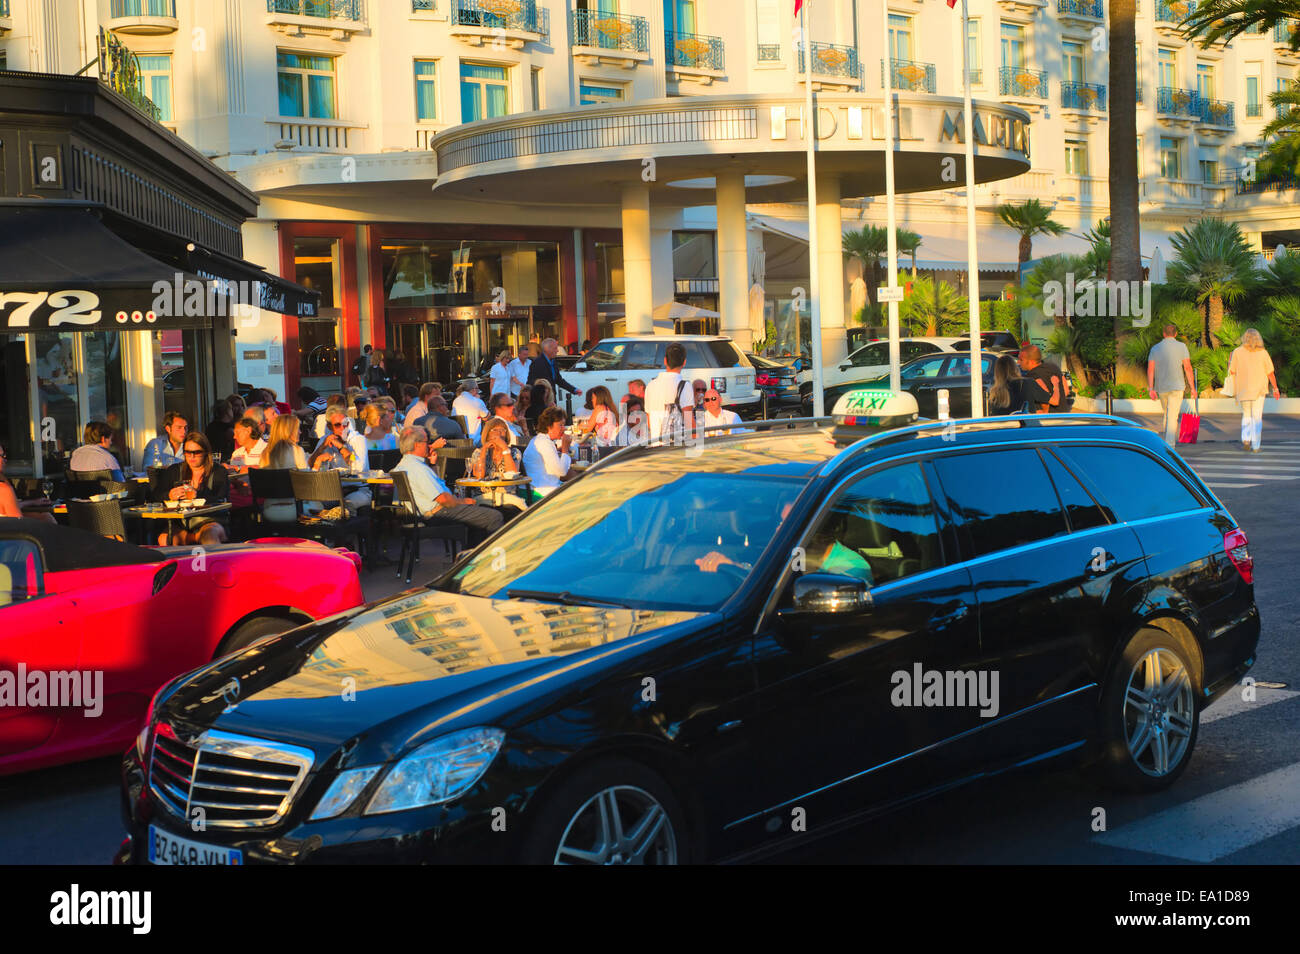 People chilling in Cannes - Stock Image